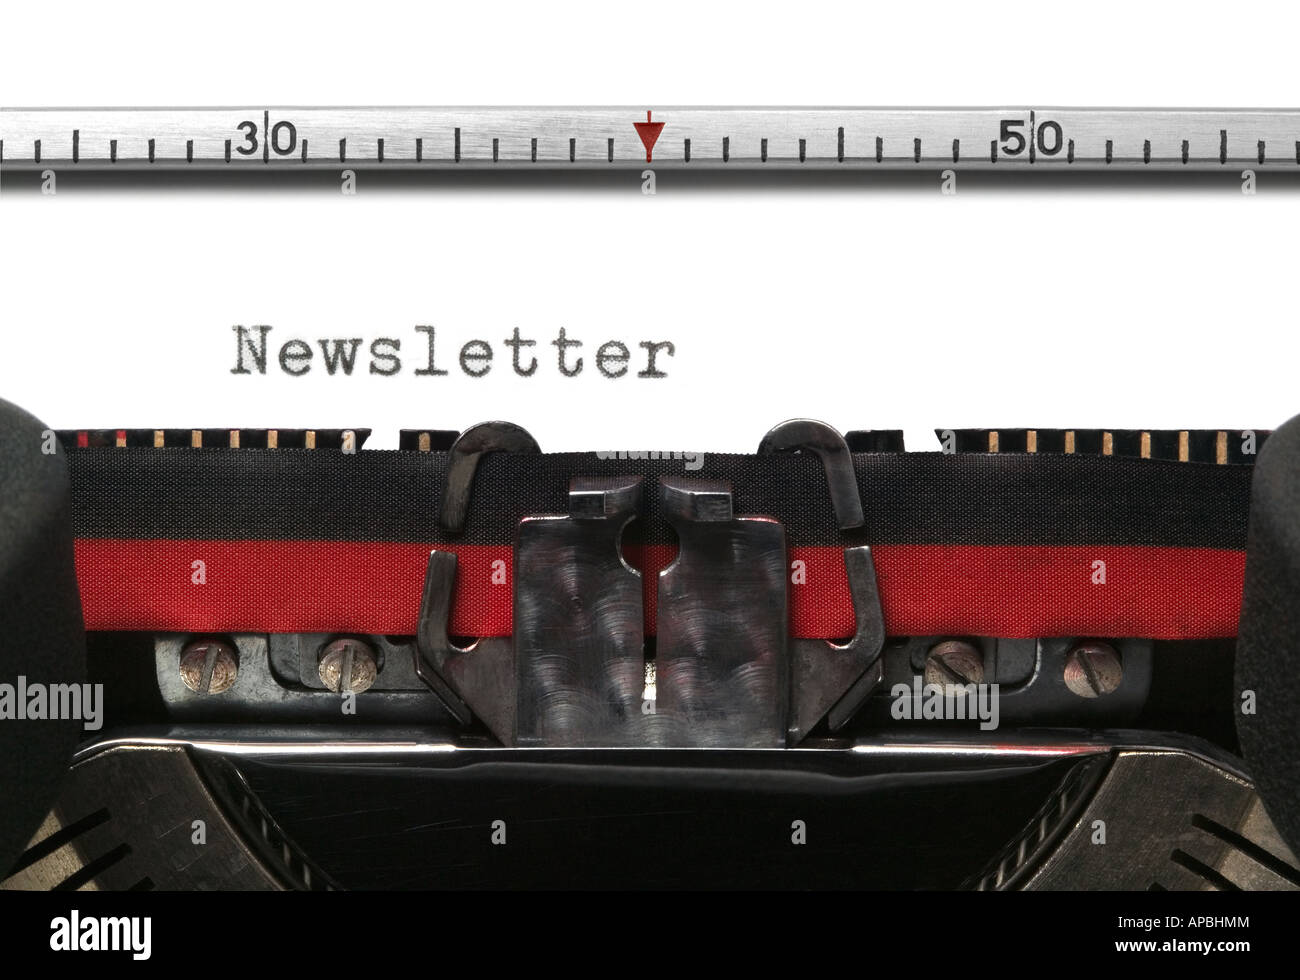 Newsletter on an old typewriter genuine font - Stock Image